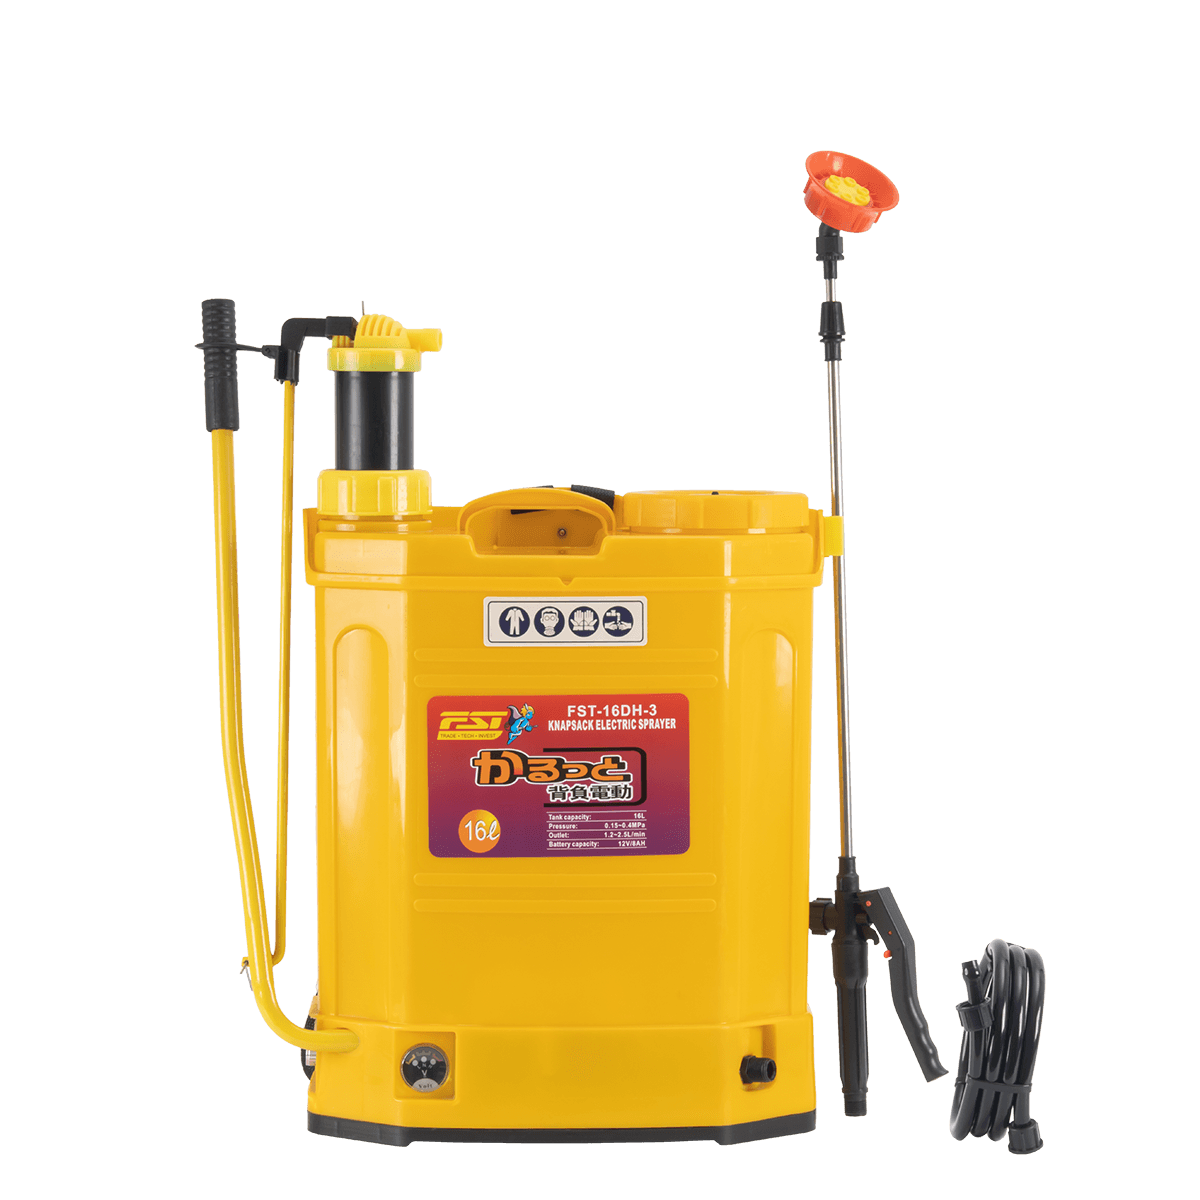 FST-16DH-3 Knapsack Electric Sprayer